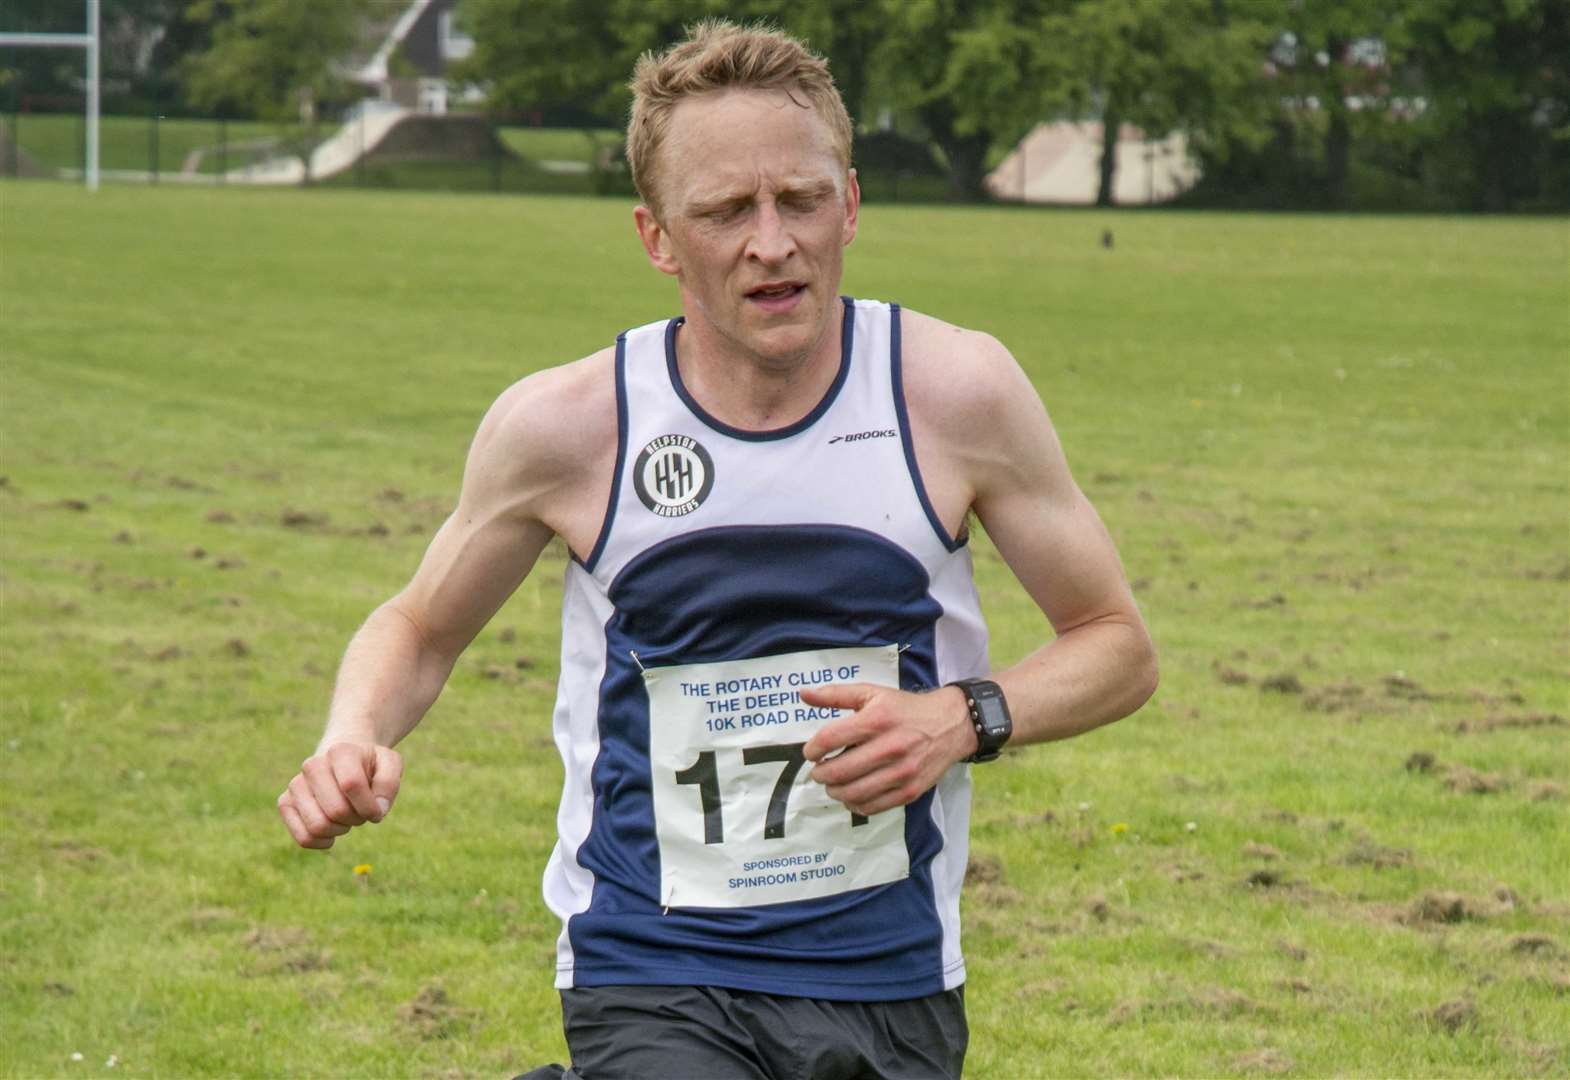 Helpston quartet produce dominant display at Deepings 10k race